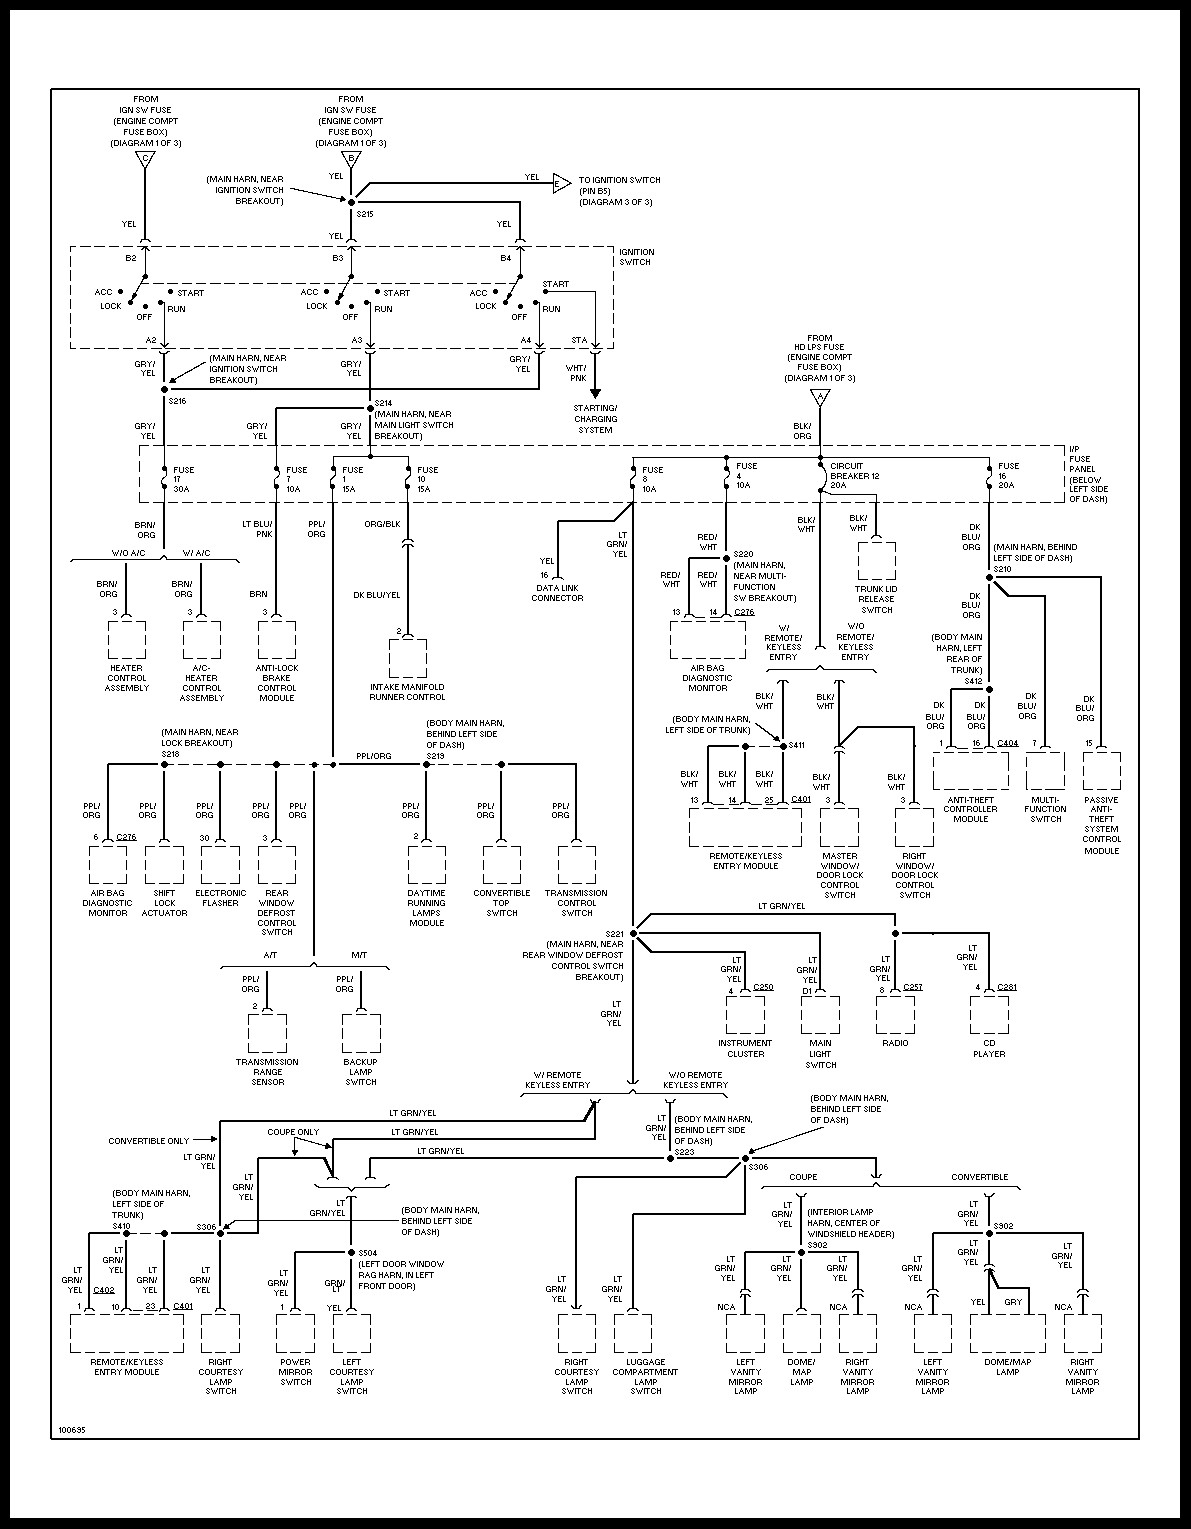 1998 Ford Mustang 3.8 V6 Fuse Box Diagram